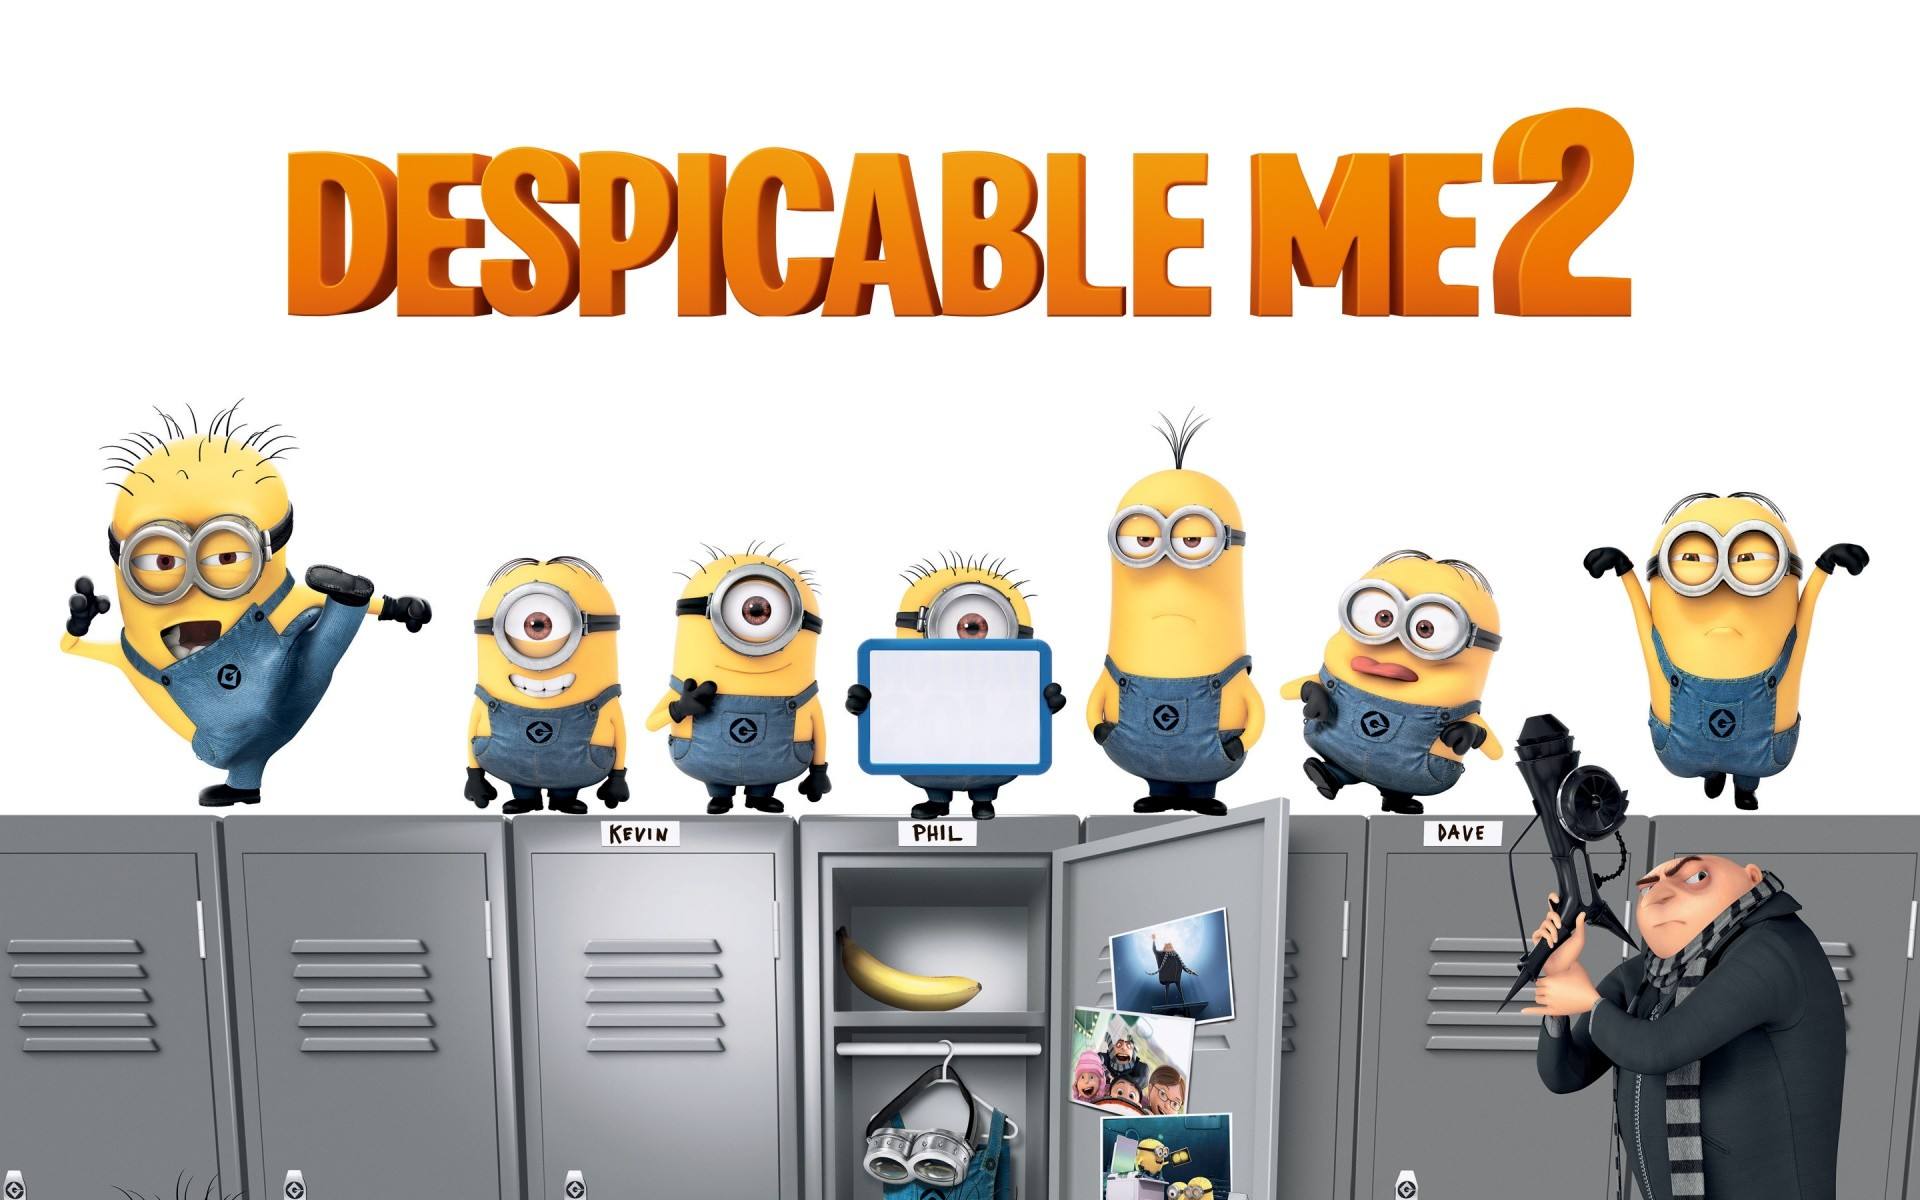 1920x1200 Minions Despicable Me 2 Desktop Wallpaper